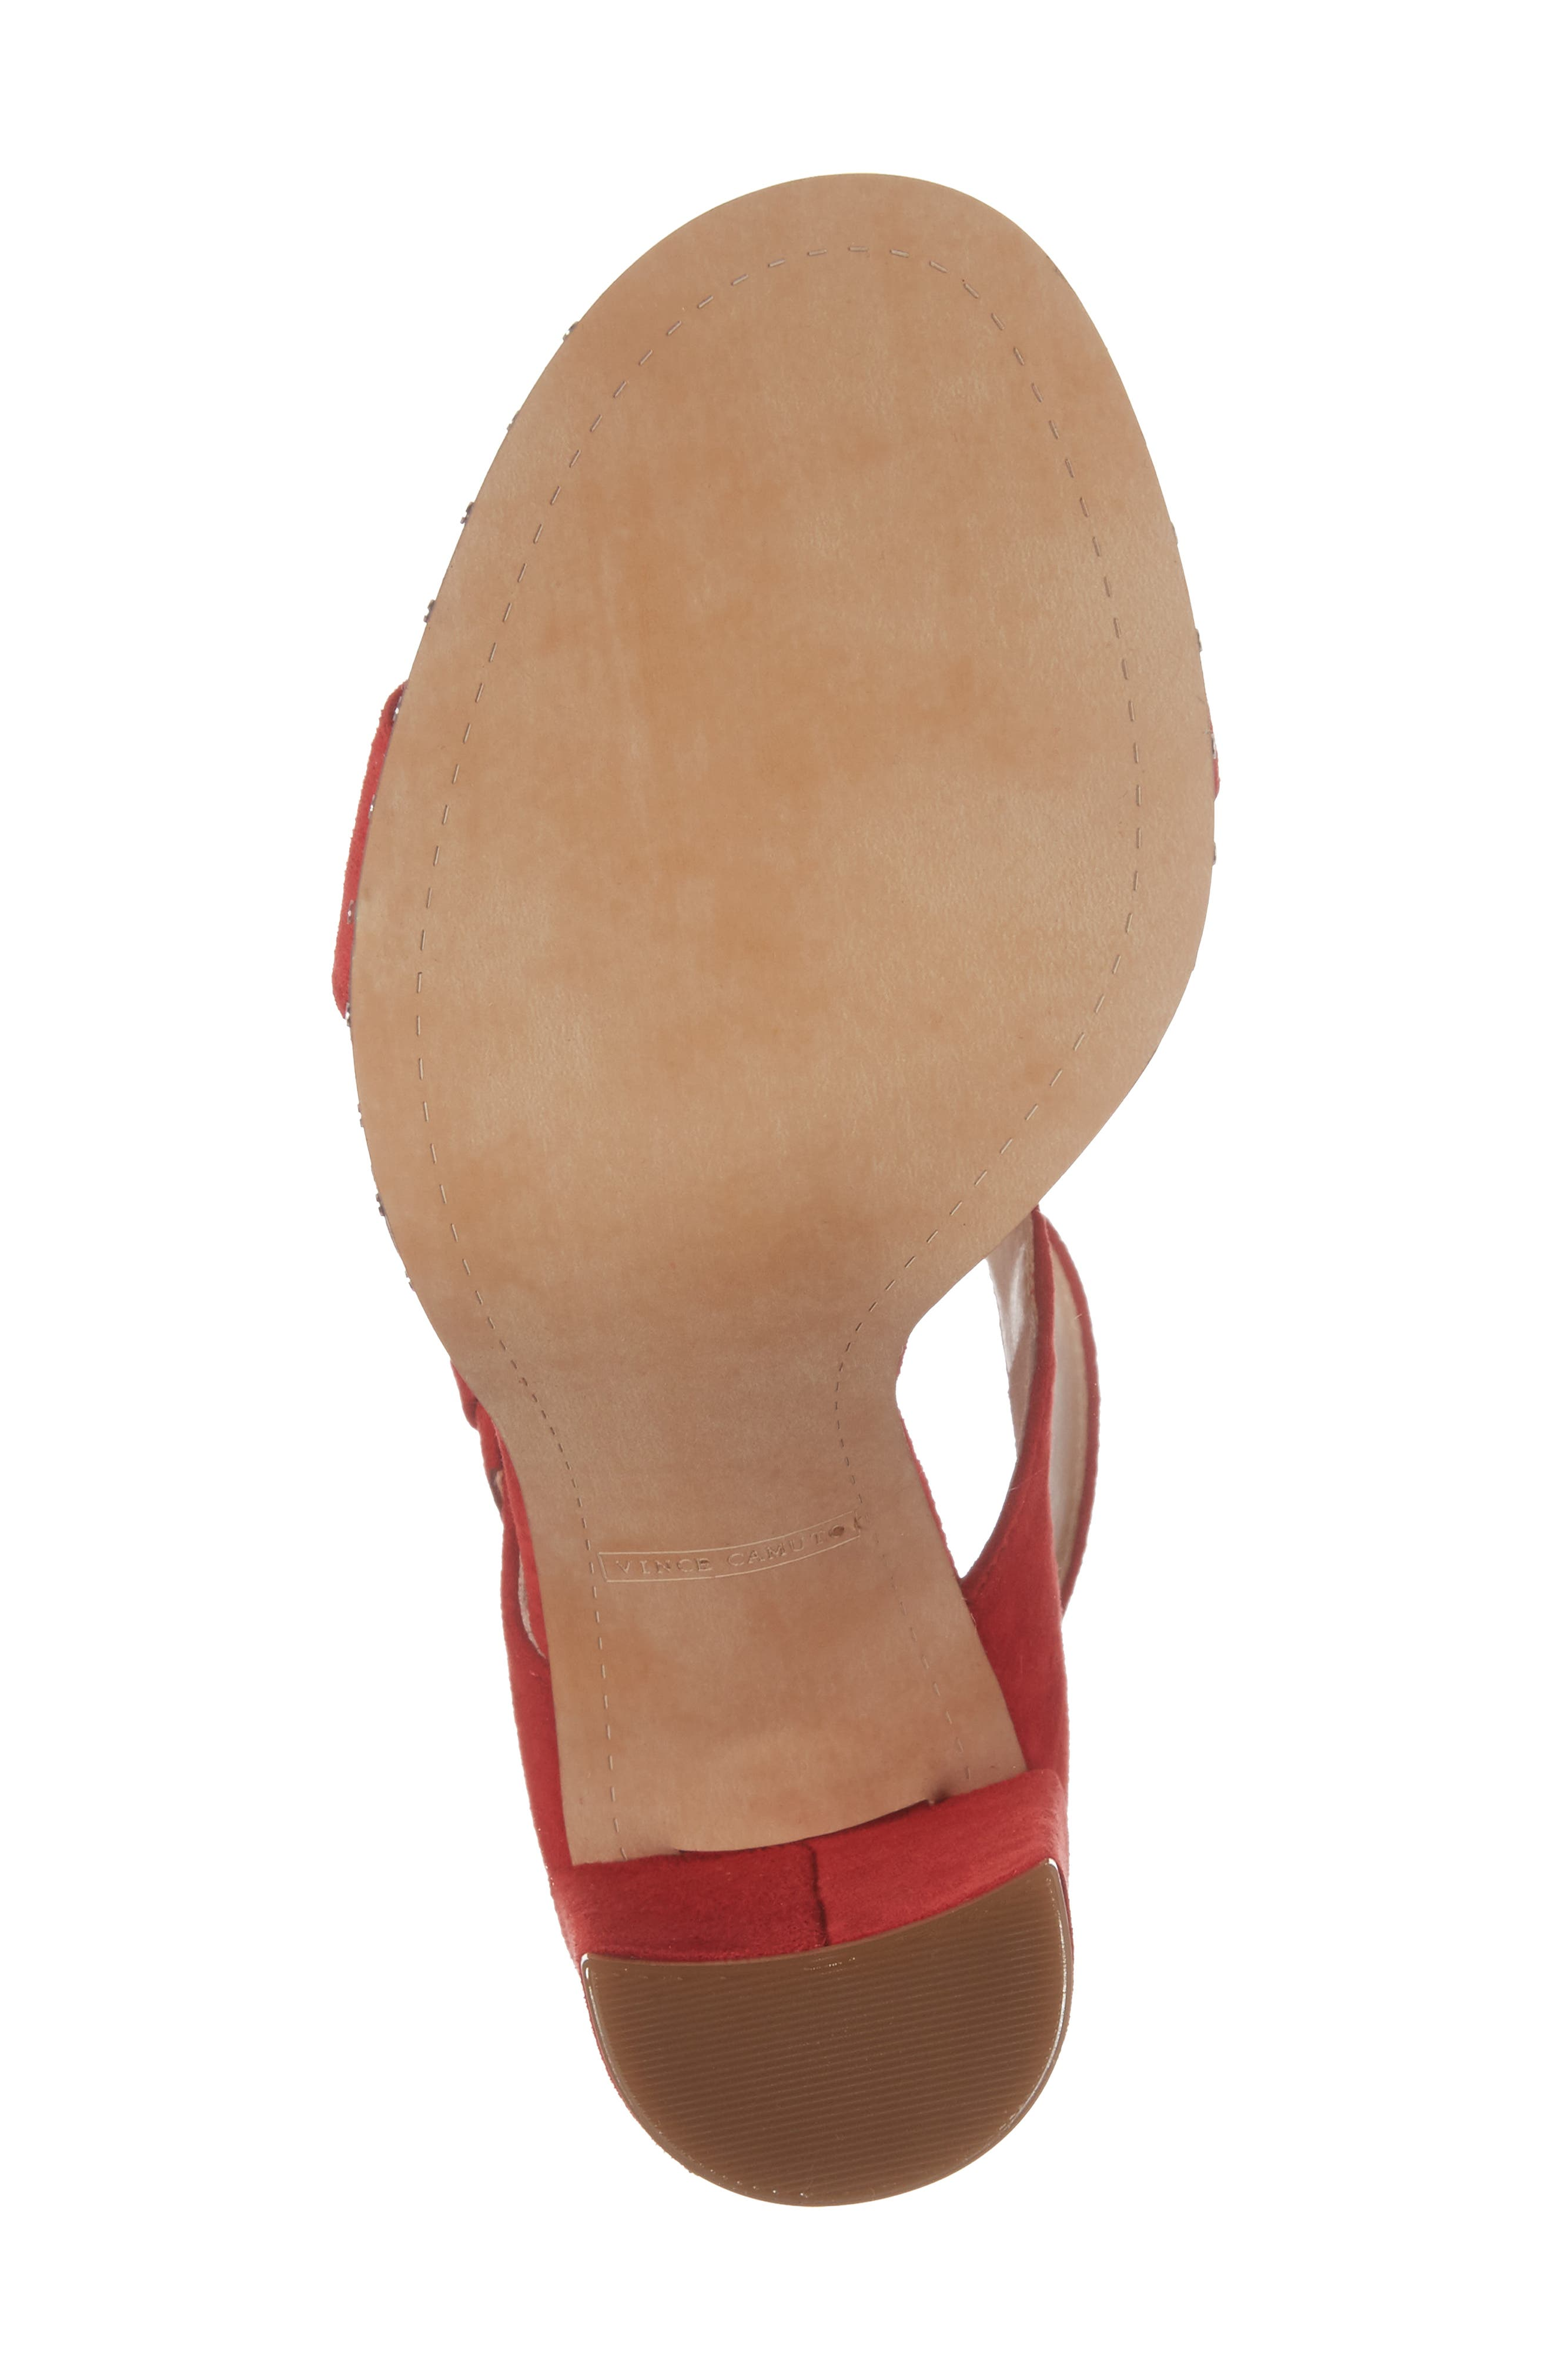 Jesina Sandal,                             Alternate thumbnail 6, color,                             Cherry Red Suede